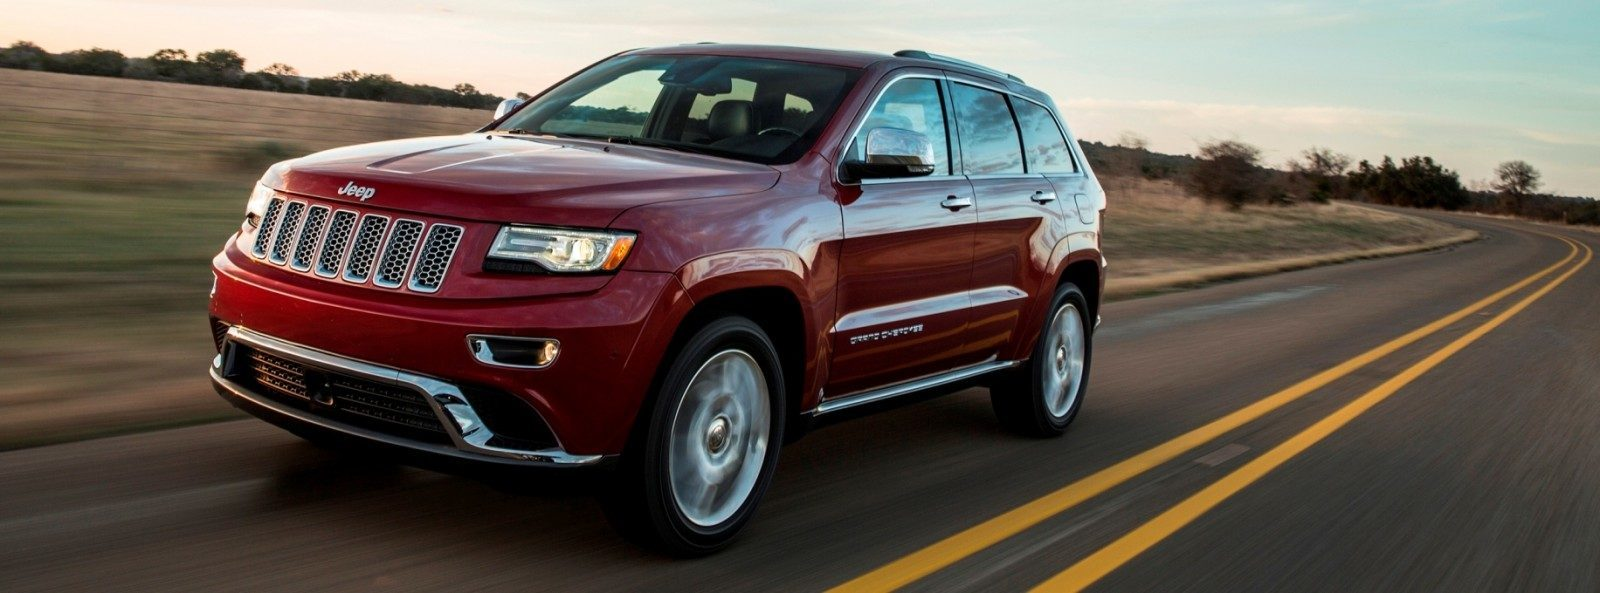 2014 Jeep Grand Cherokee Buyers Guide To Engines Suspensions And Top Trims Summit Altitude